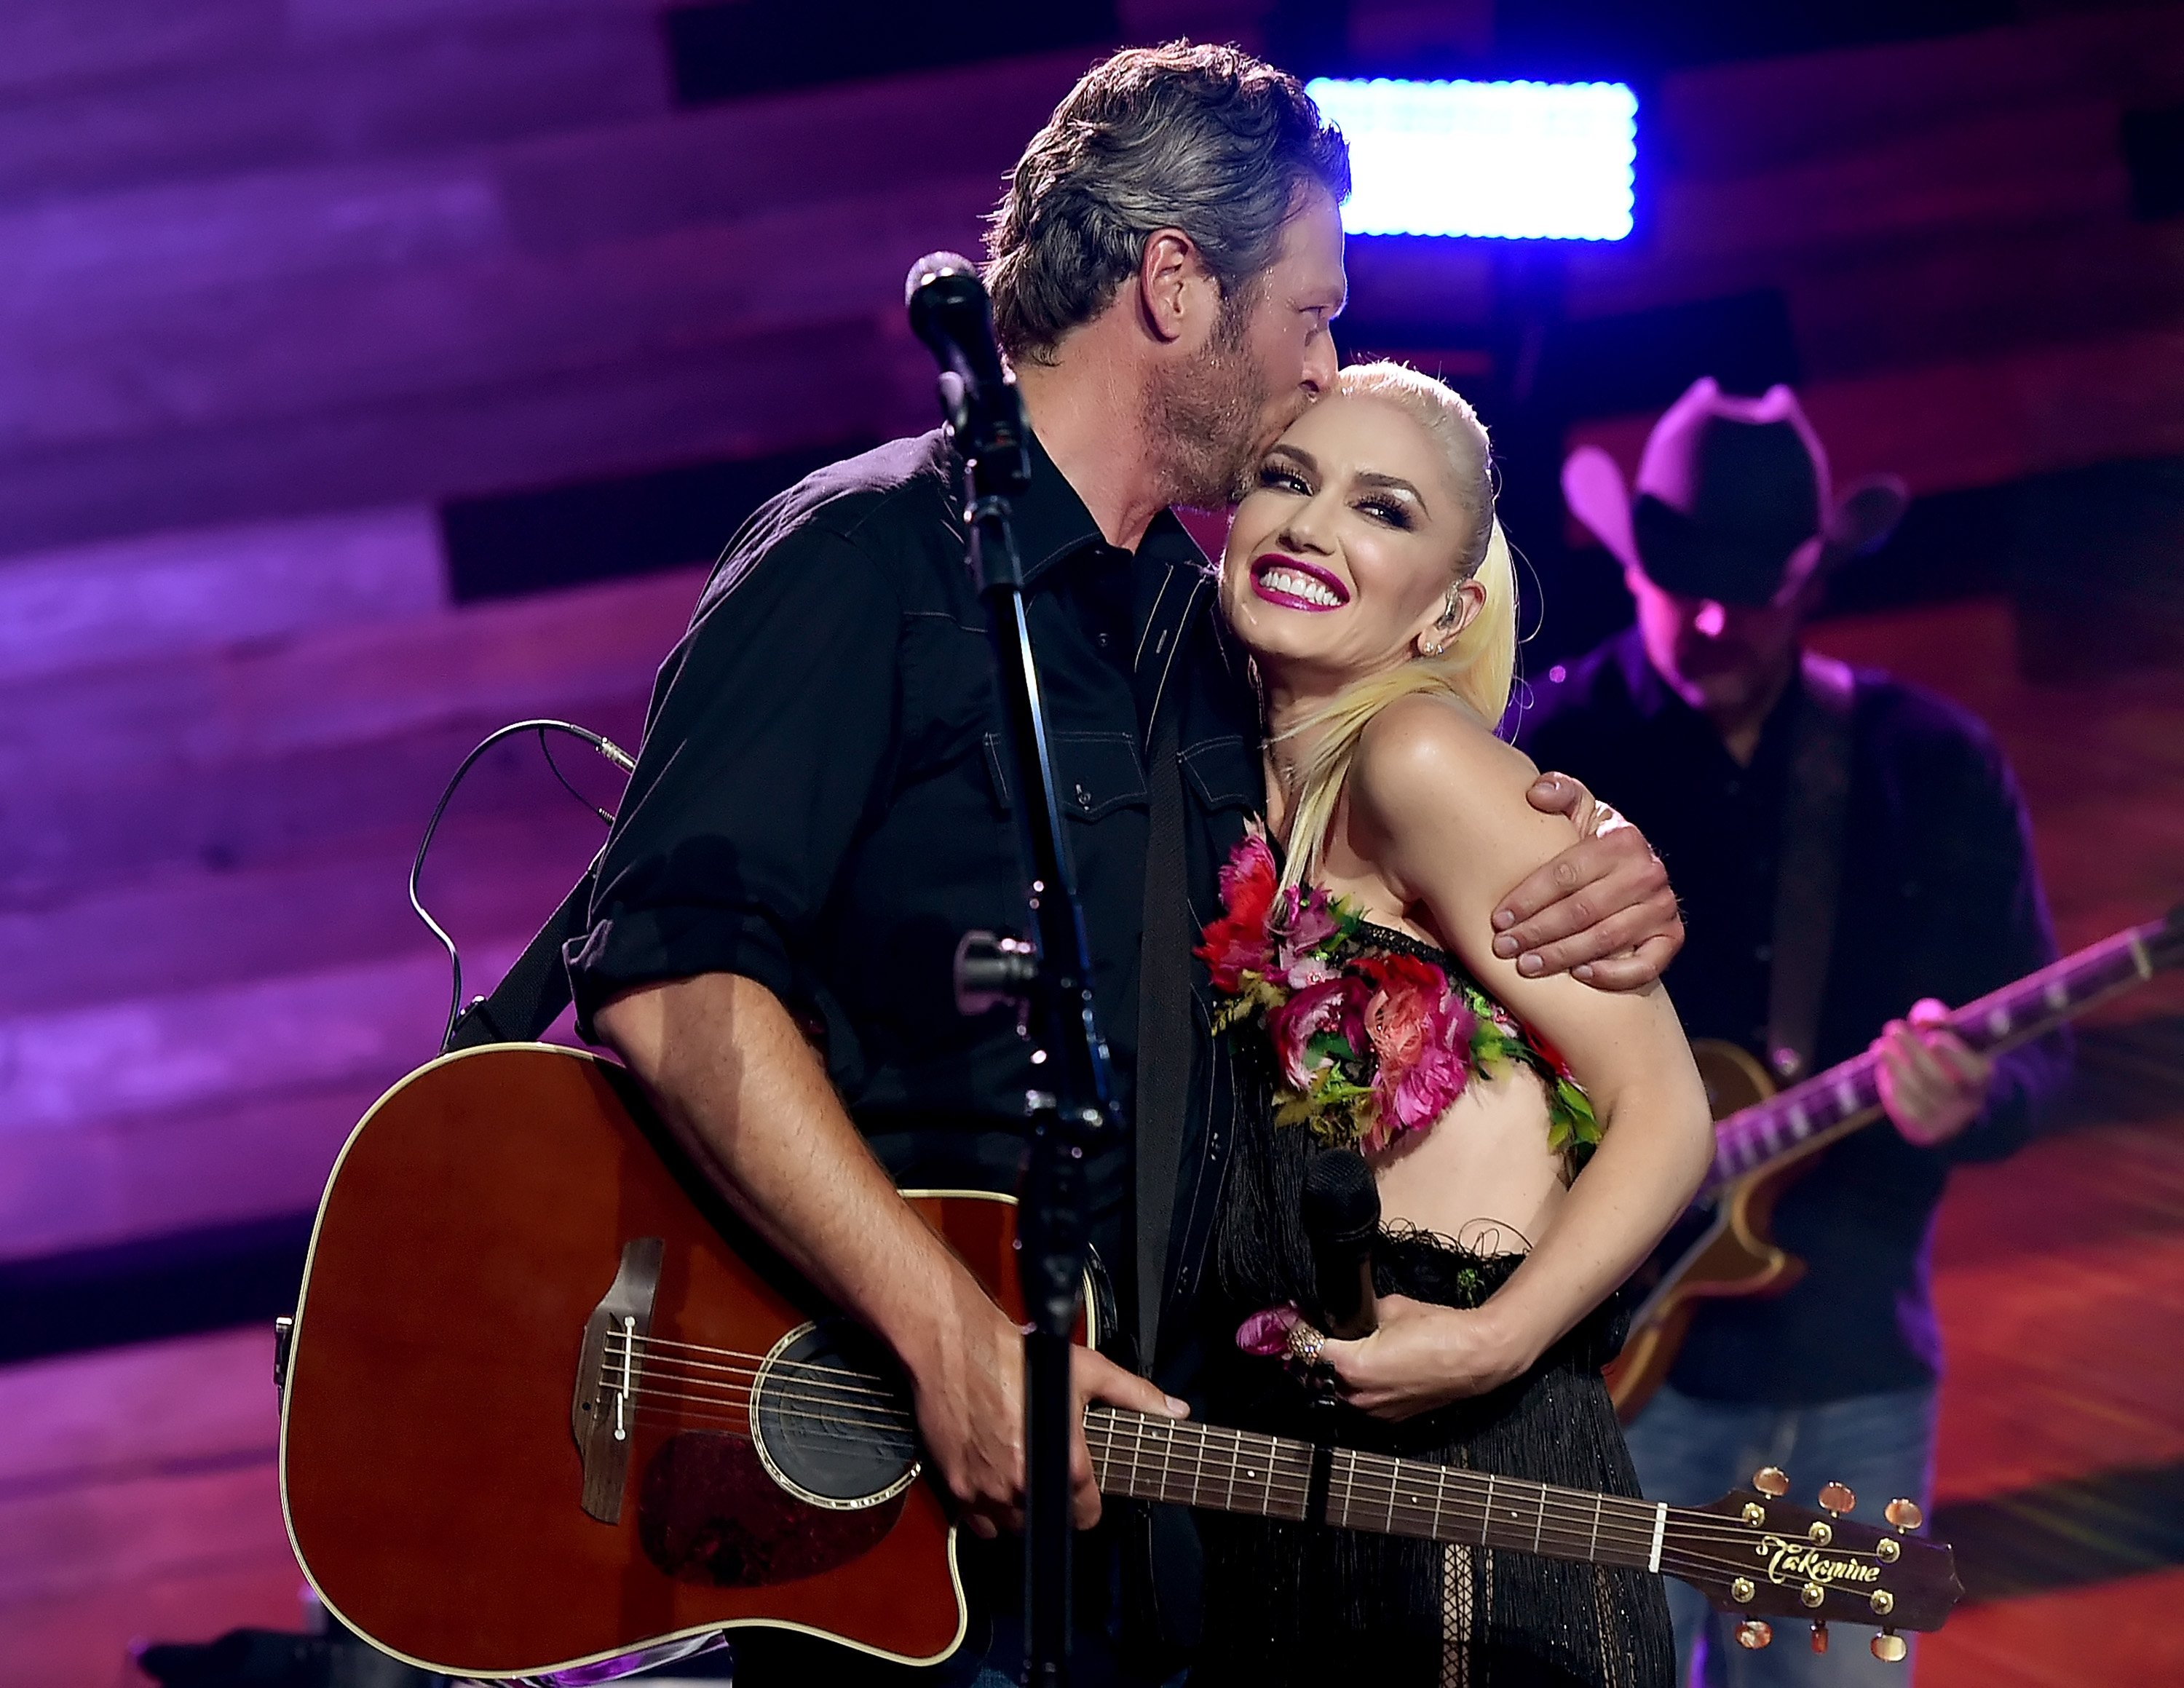 Blake Shelton and Gwen Stefani during their 2016 performance in Burbank. | Photo: Getty Images